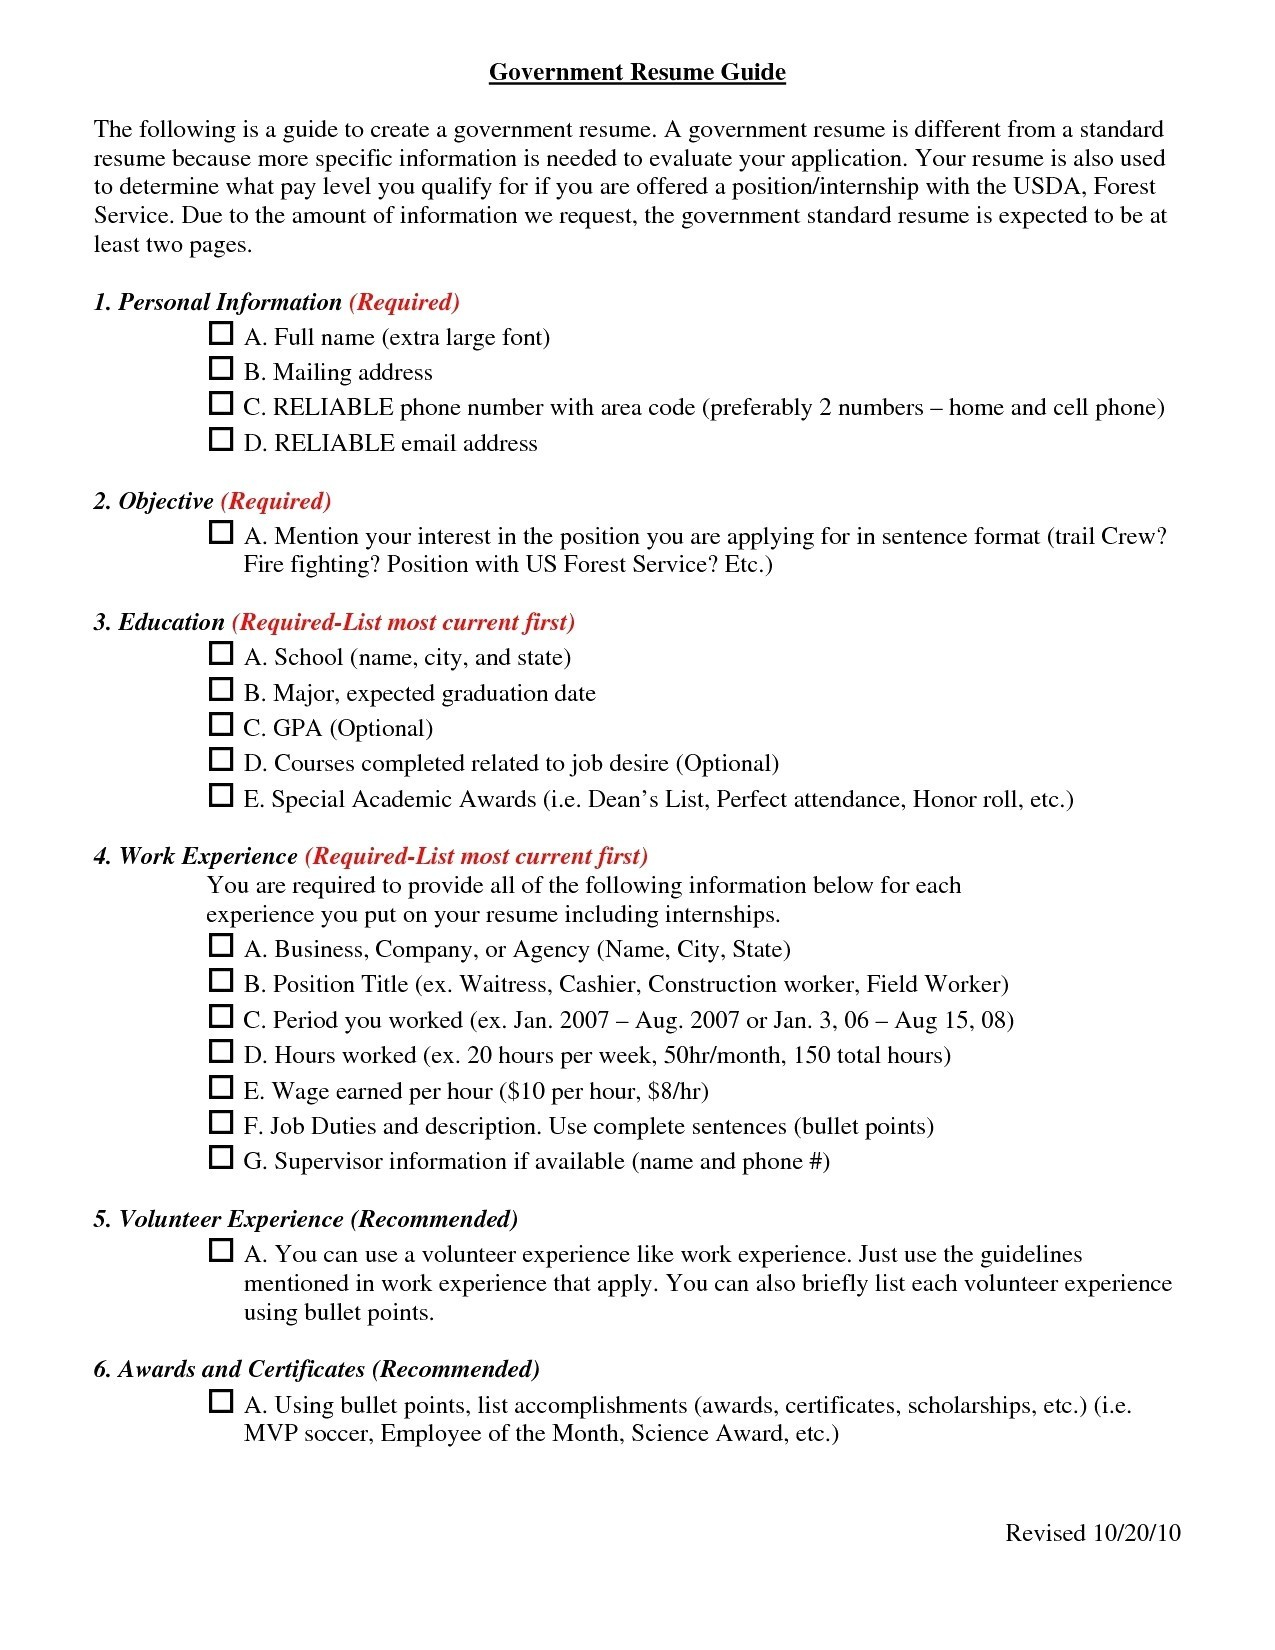 Optimal Resume Wyotech - Wyotech Optimal Resume